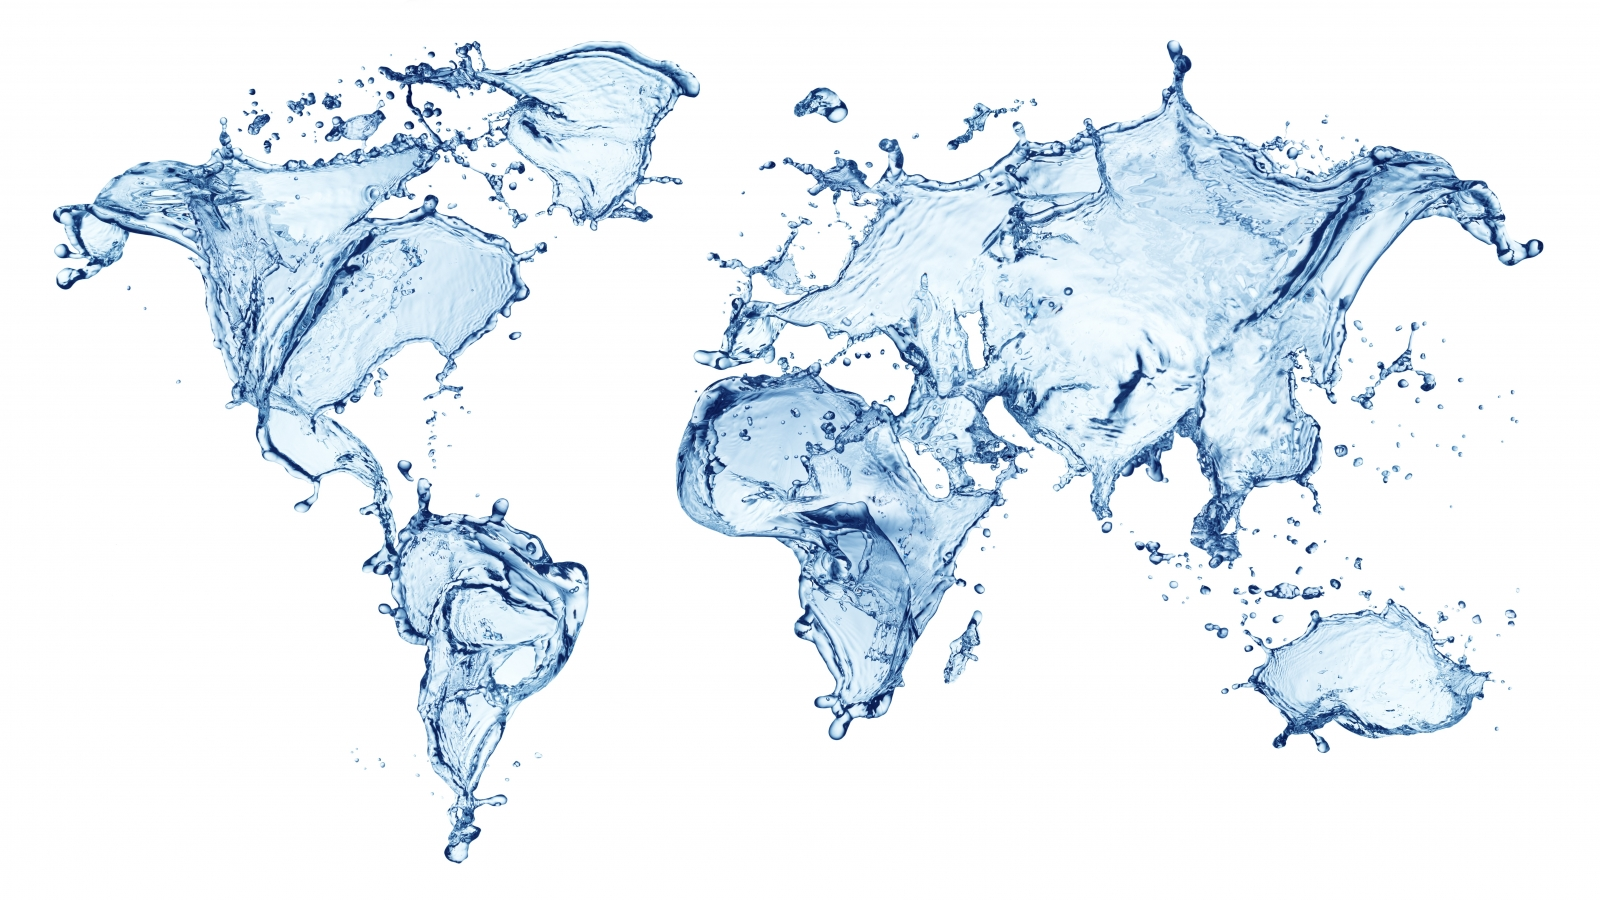 world water day map hd desktop 1600900 1